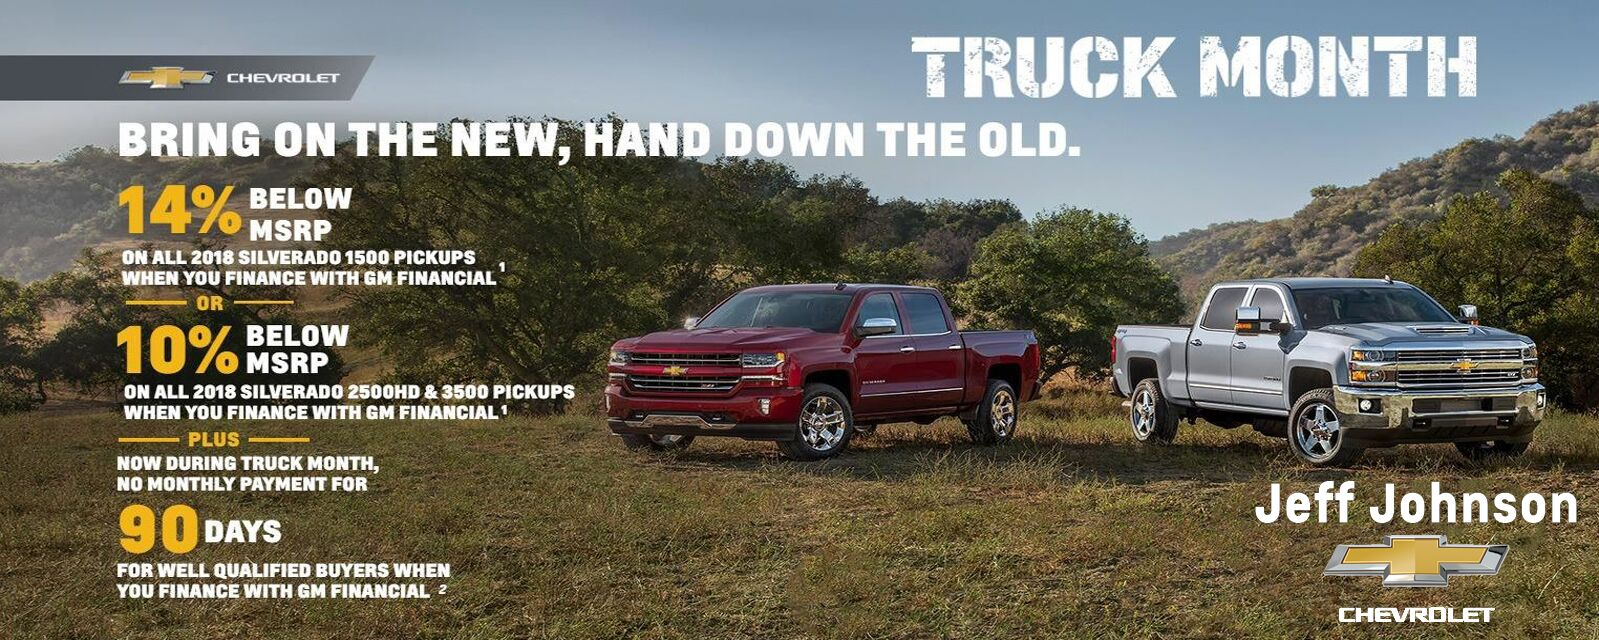 Truck Month at Jeff Johnson Chevrolet